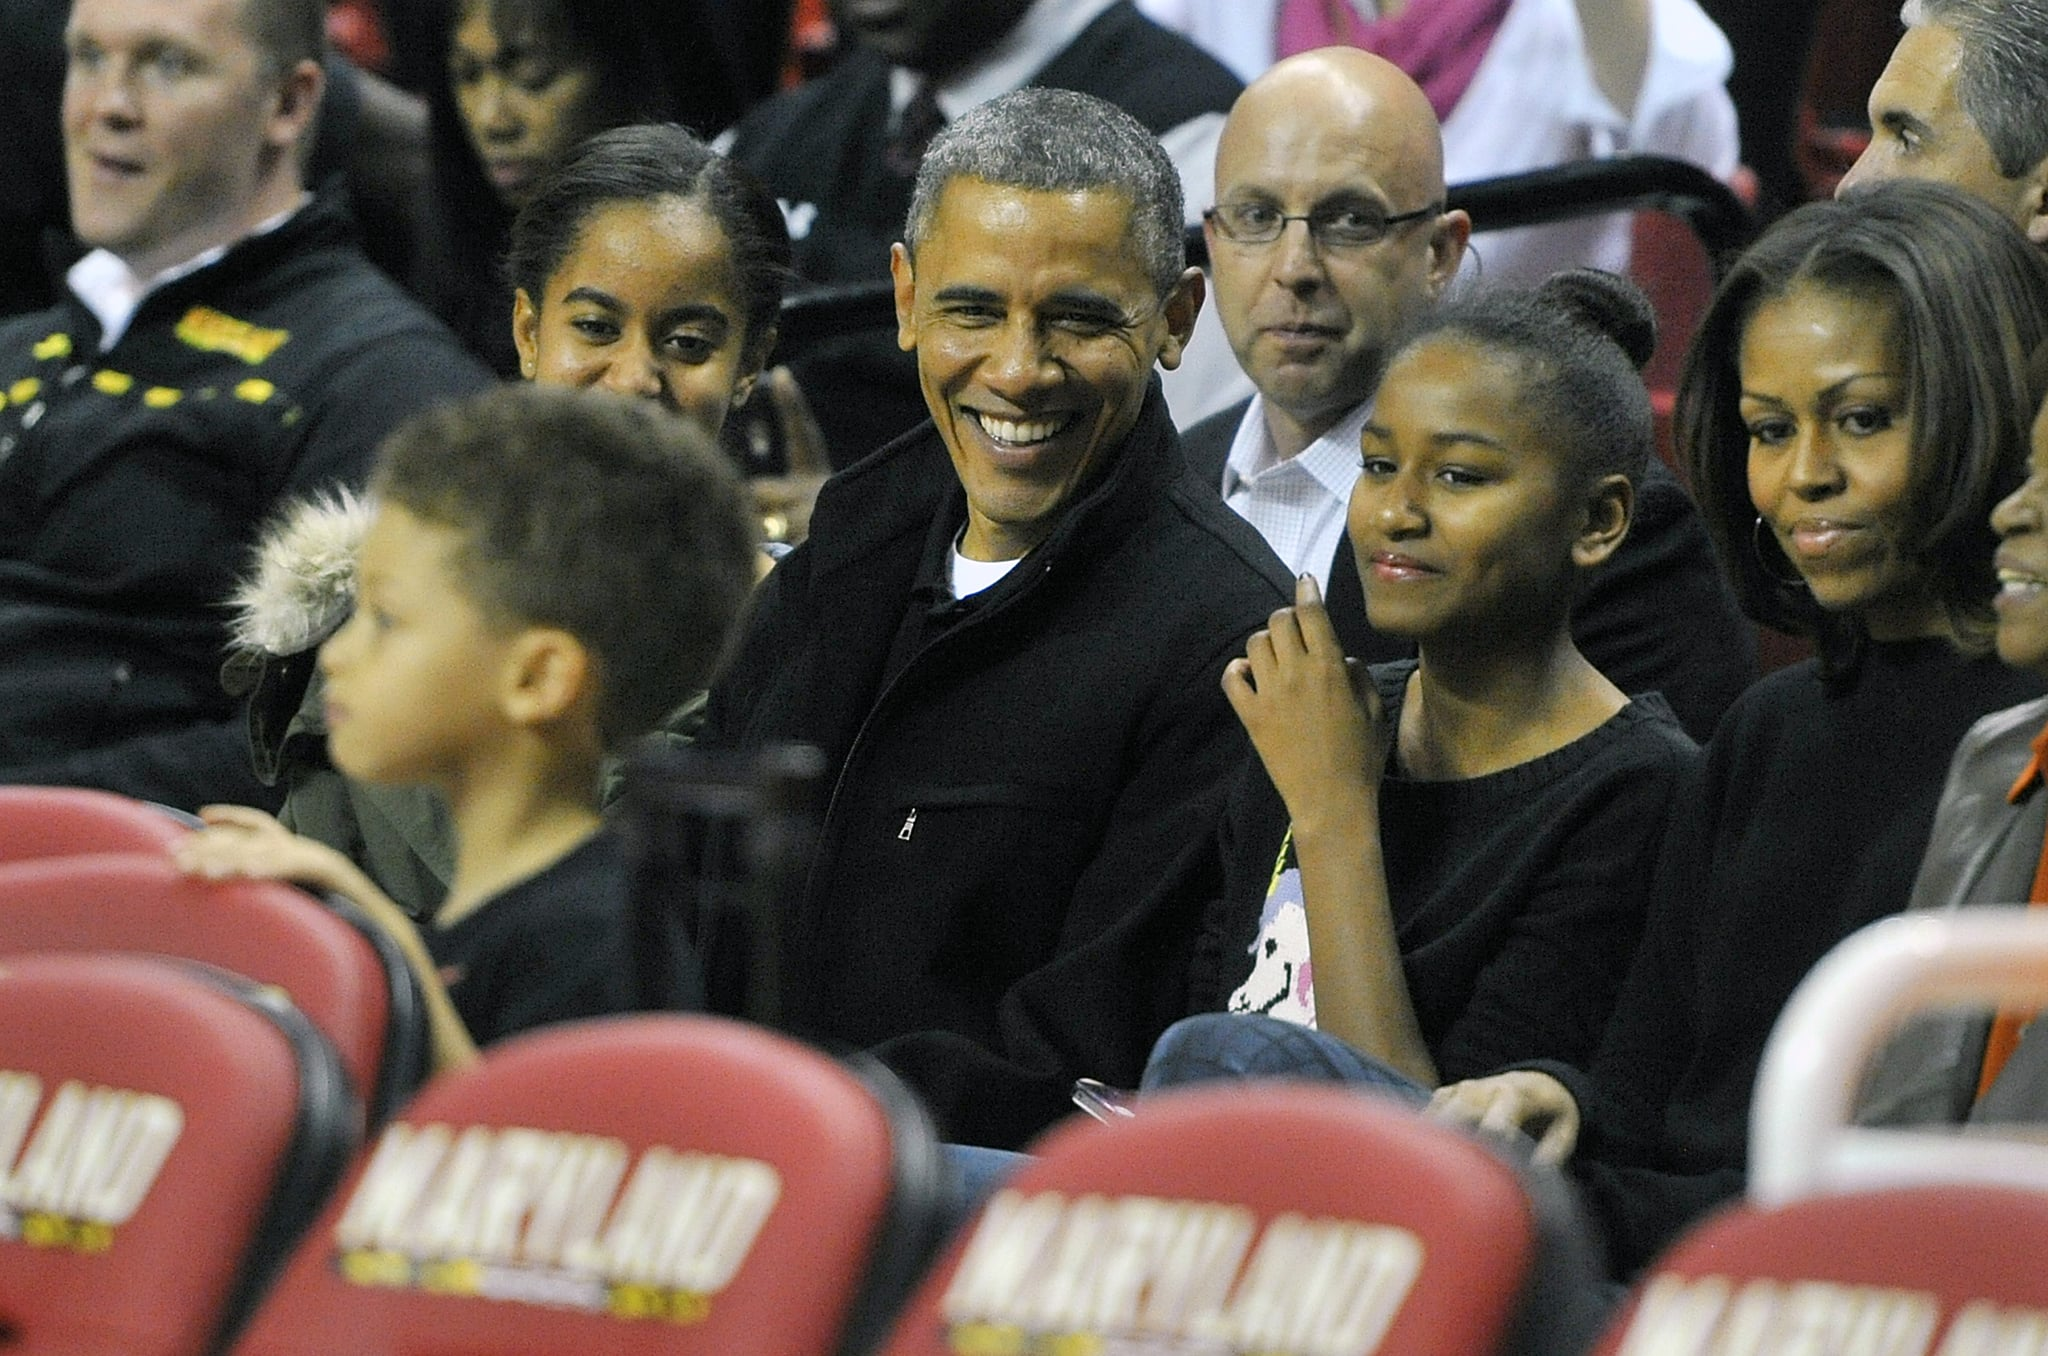 COLLEGE PARK, MD - NOVEMBER 17: President of the United States Barack Obama with his daughters Malia (L) and Sasha (R) and wife Michelle in their seats before a college basketball game between the Oregon State Beavers and the Maryland Terrapins at the Comcast Center on November 17, 2013 in College Park, Maryland.(Photo by G Fiume/Maryland Terrapins/Getty Images)